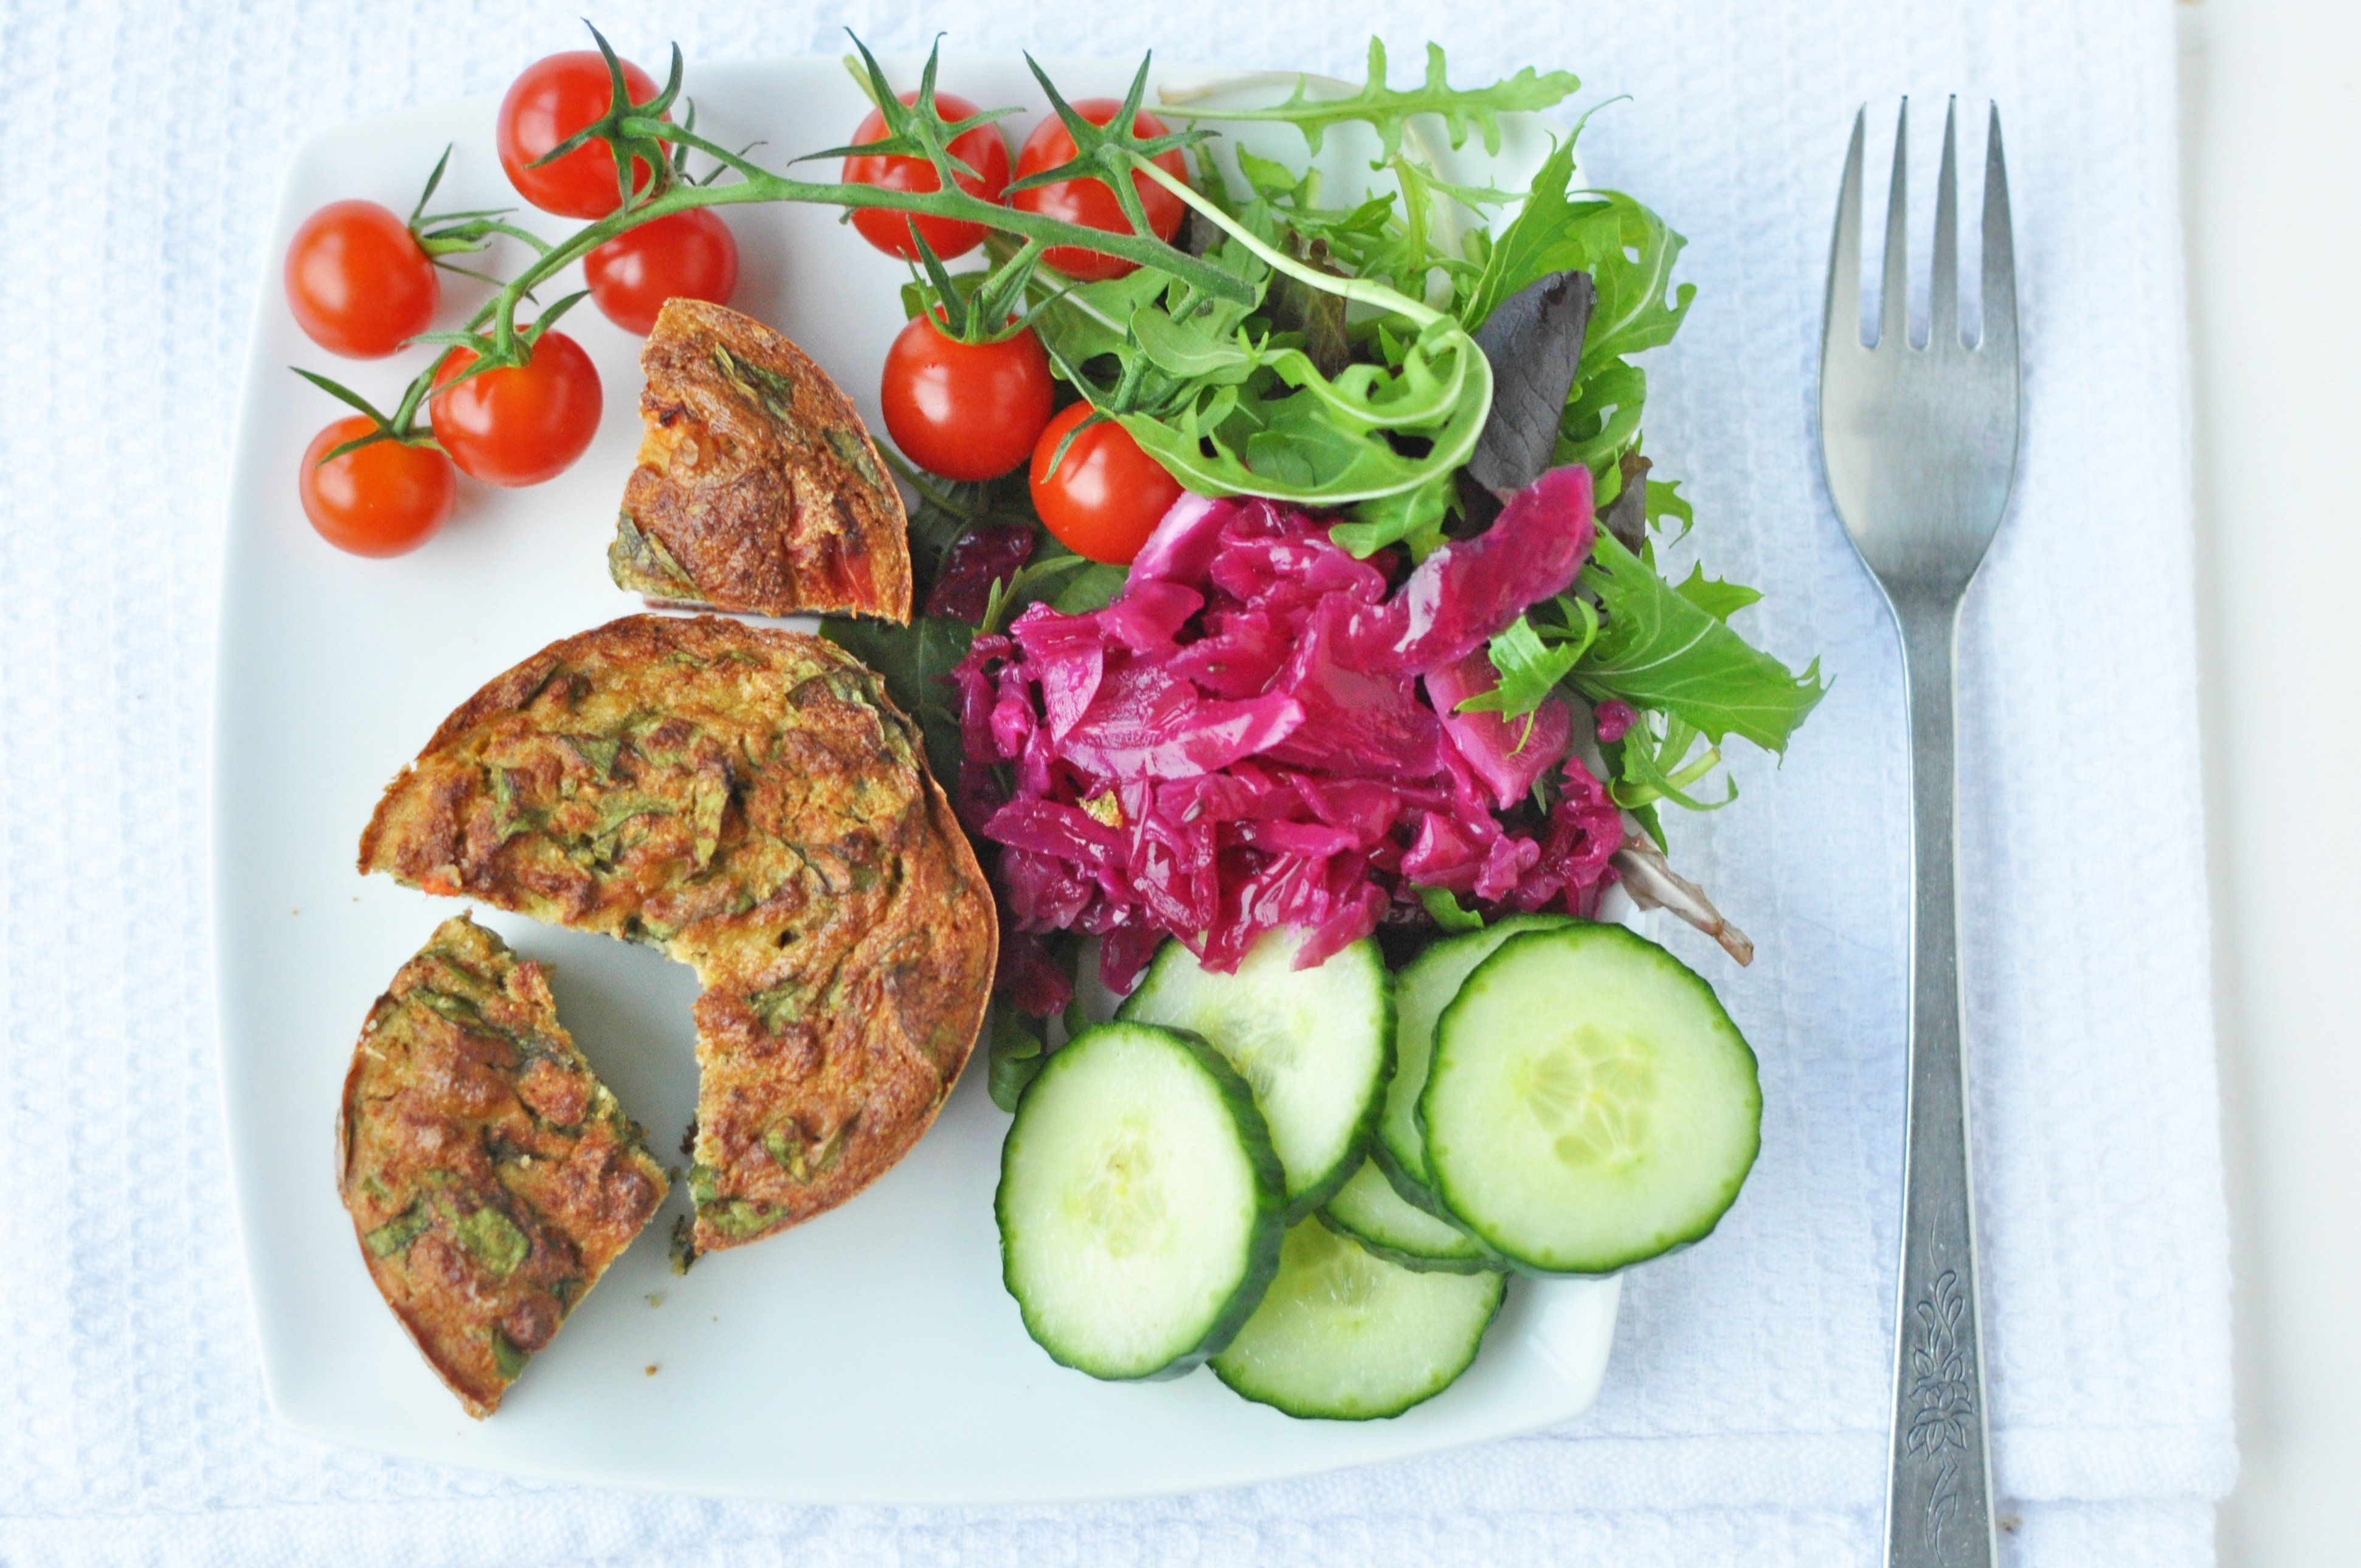 British vegan recipes recipe categories veganuary page 4 british vegan recipes recipe categories veganuary page 4 forumfinder Image collections